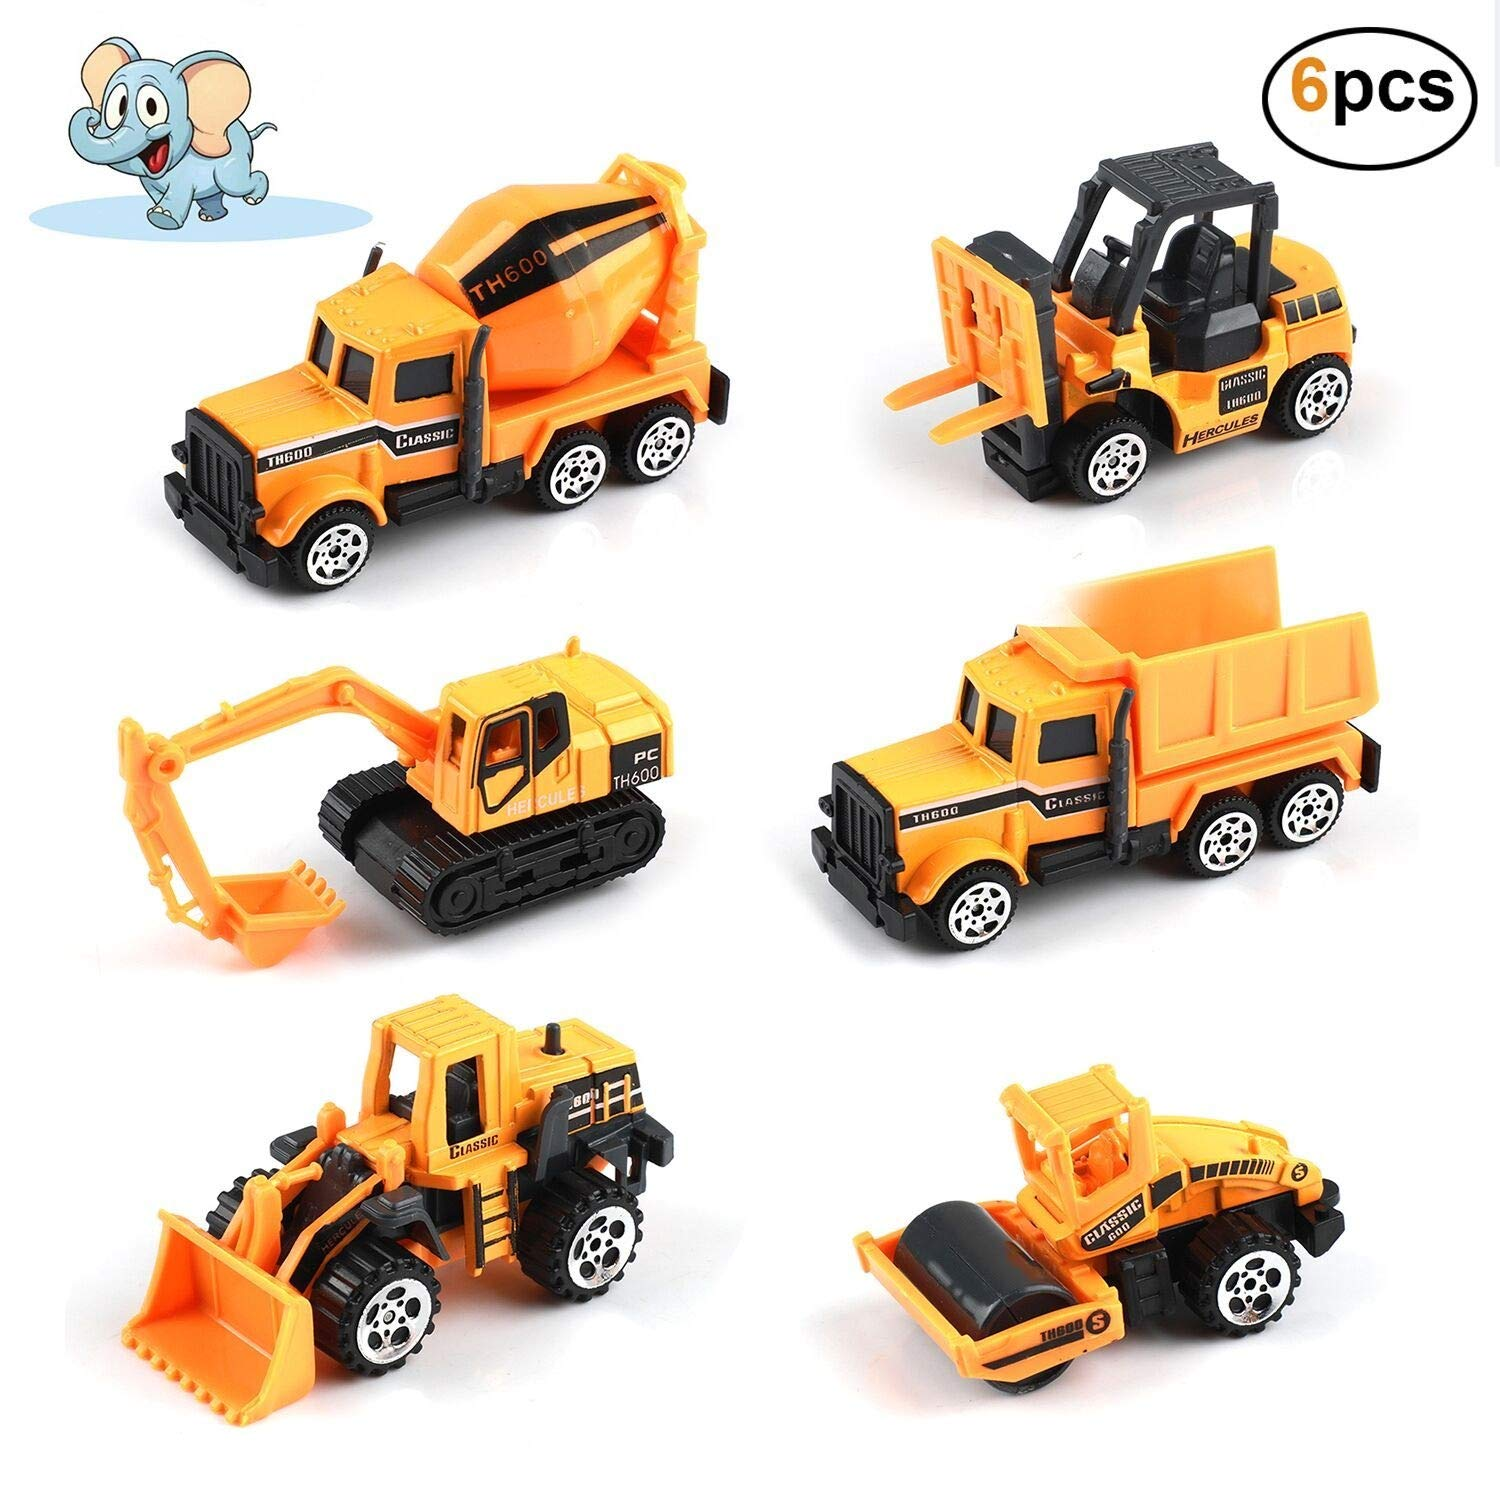 Engineering Vehicles - Construction Vehicles, 6 Pcs Play Vehicles Mini Car Toys Set Die Cast Assorted Trucks Friction Powered Push Play Truck Toys for Children Kids Boys Girls Birthday Party Gifts